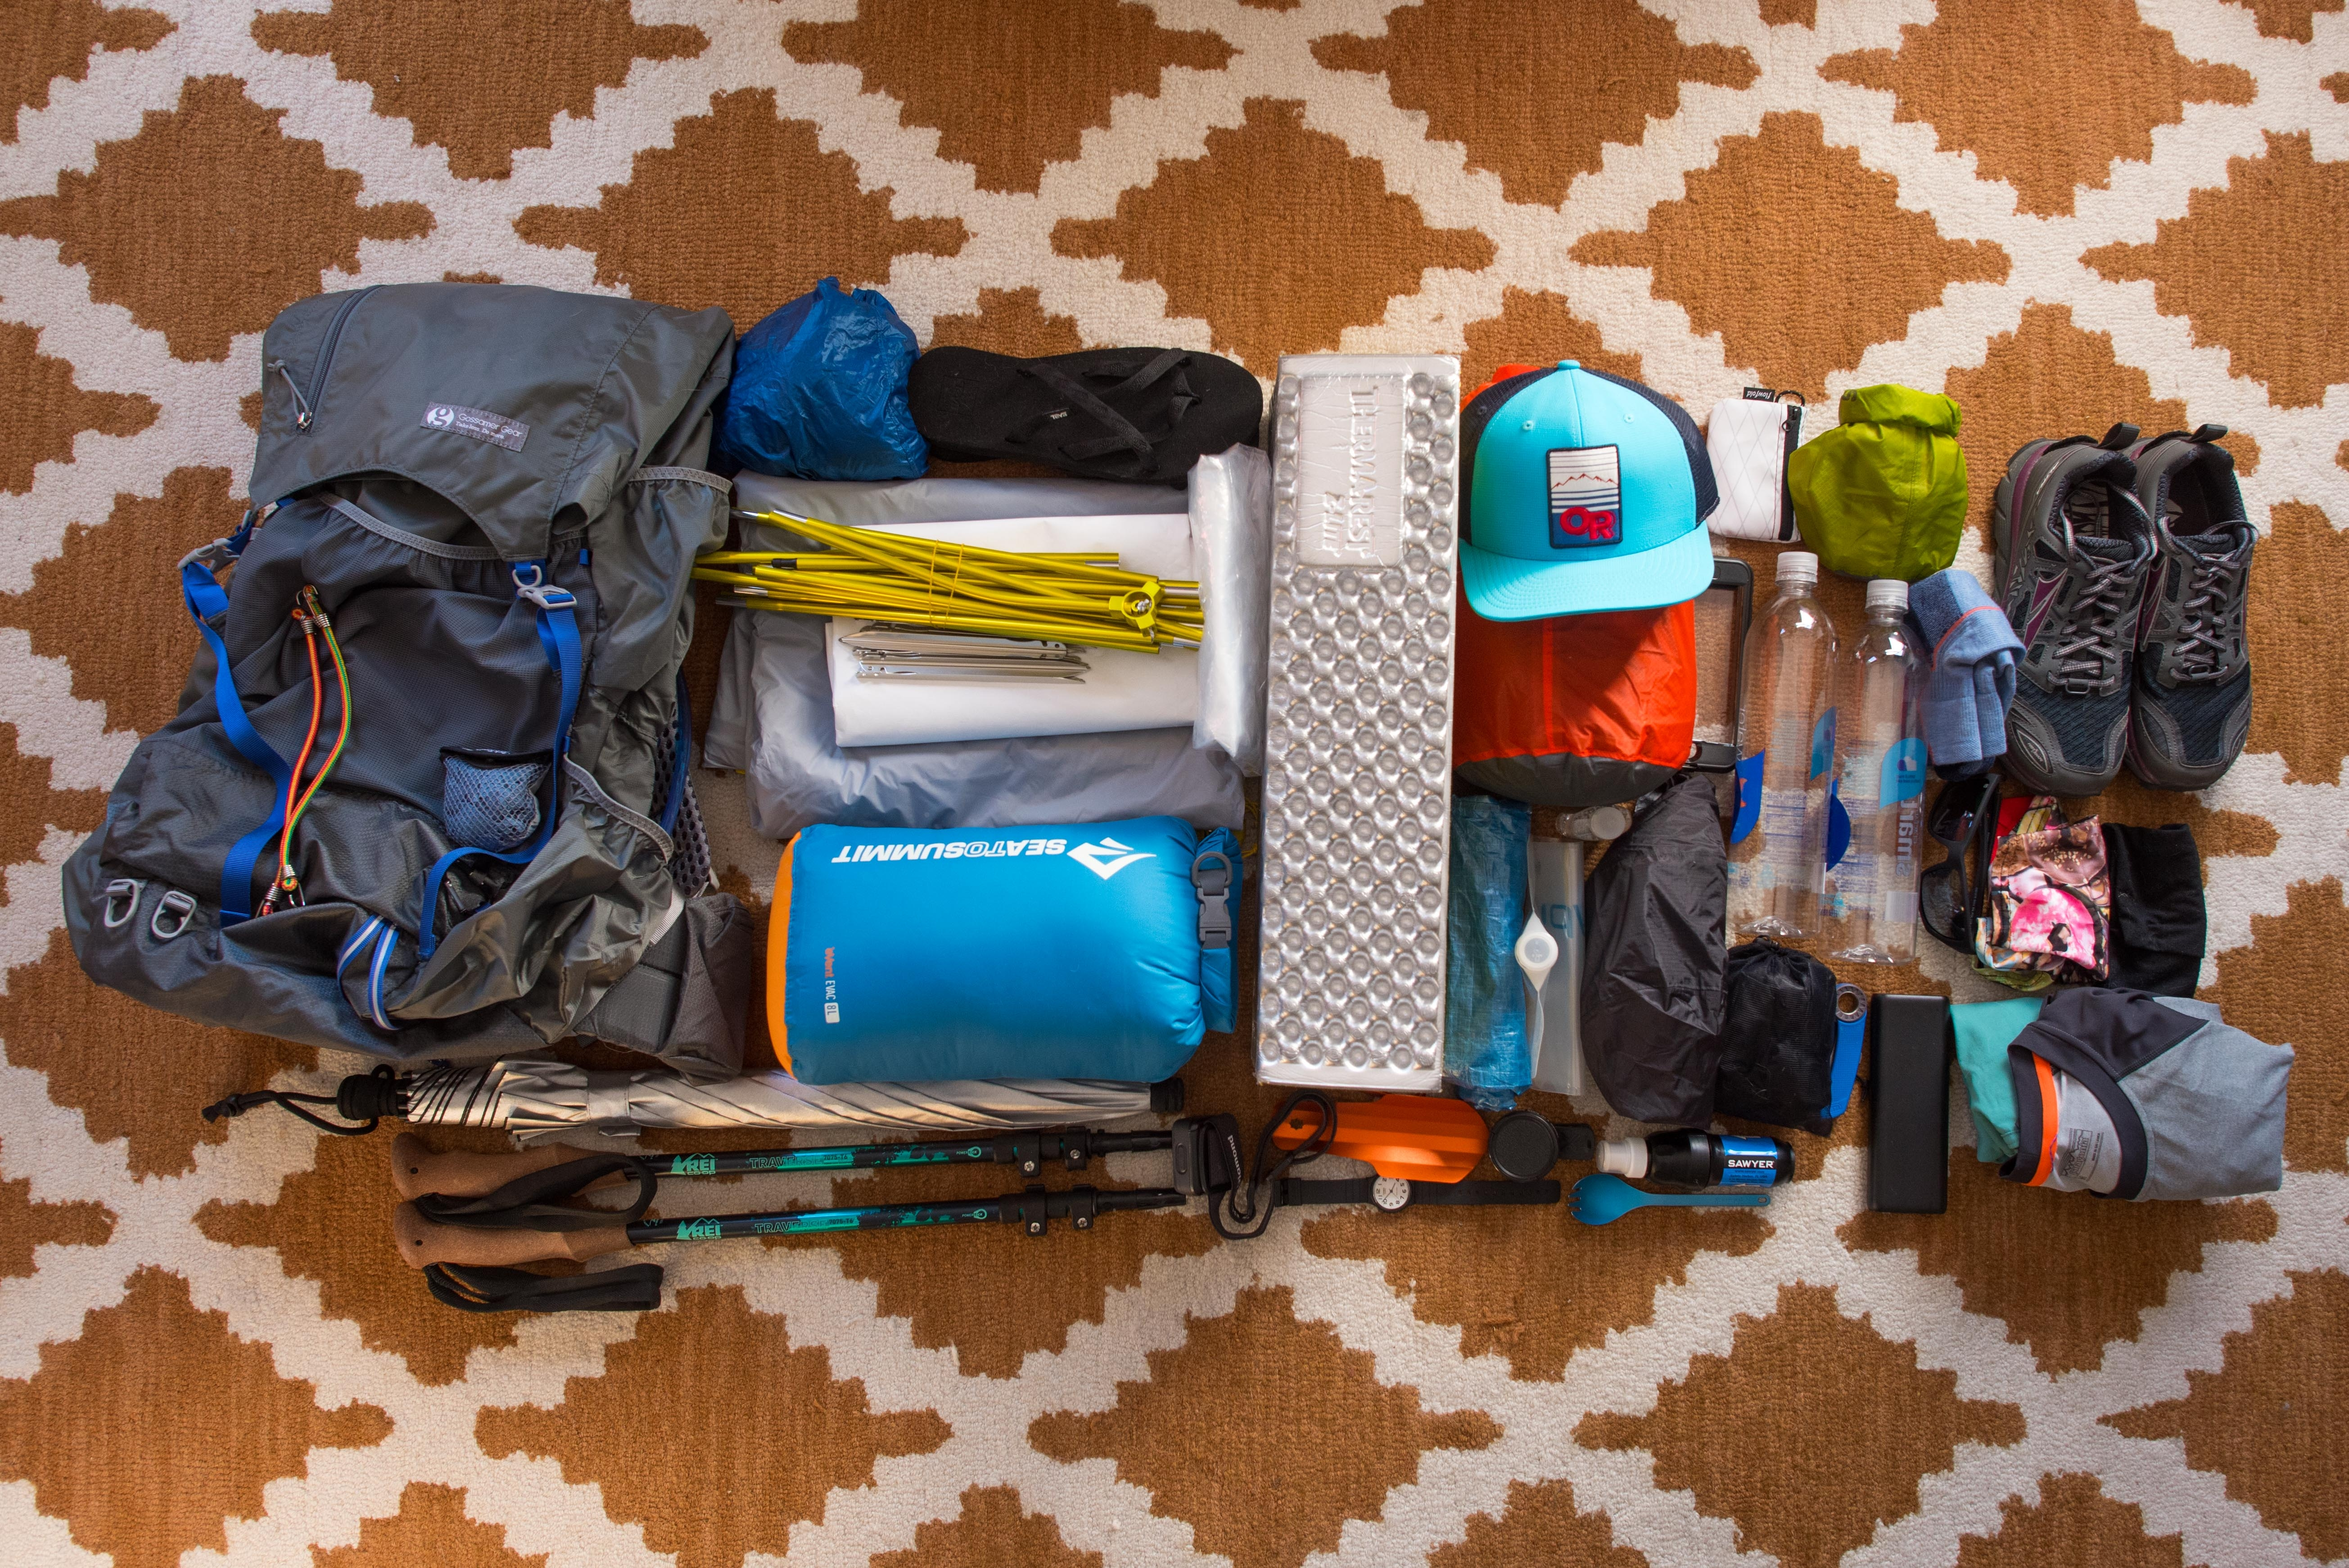 PCT 2018 Gear List: What's In My Pack